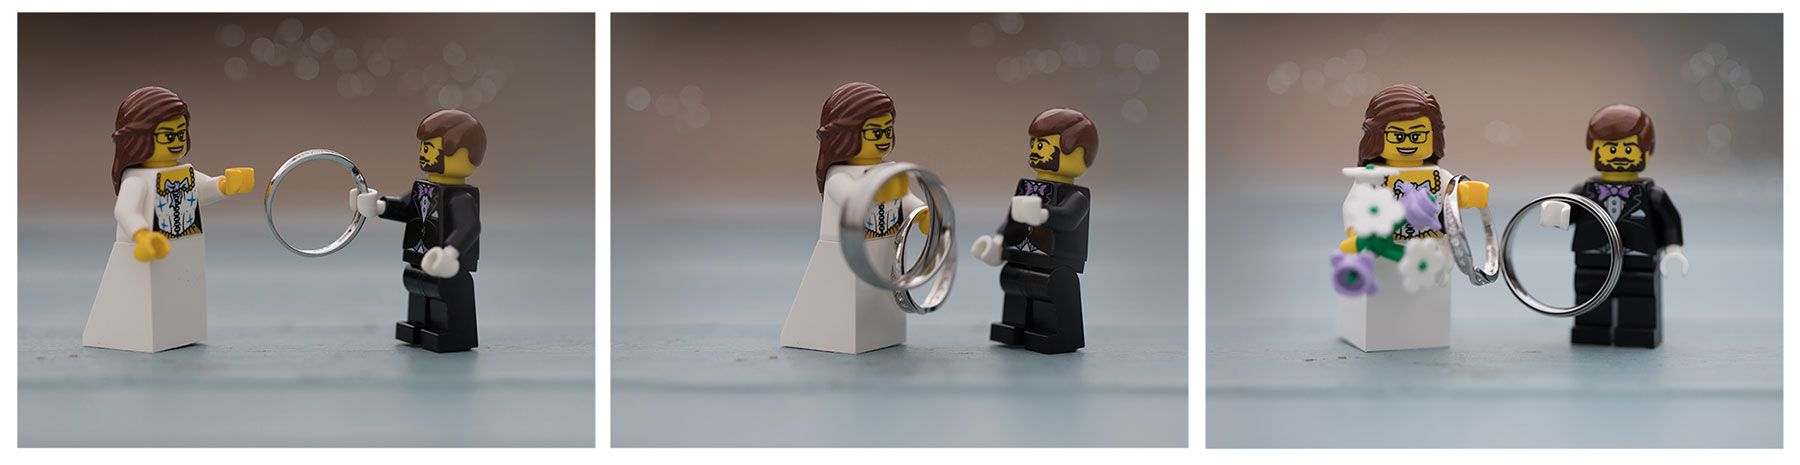 wedding rings with logo figures